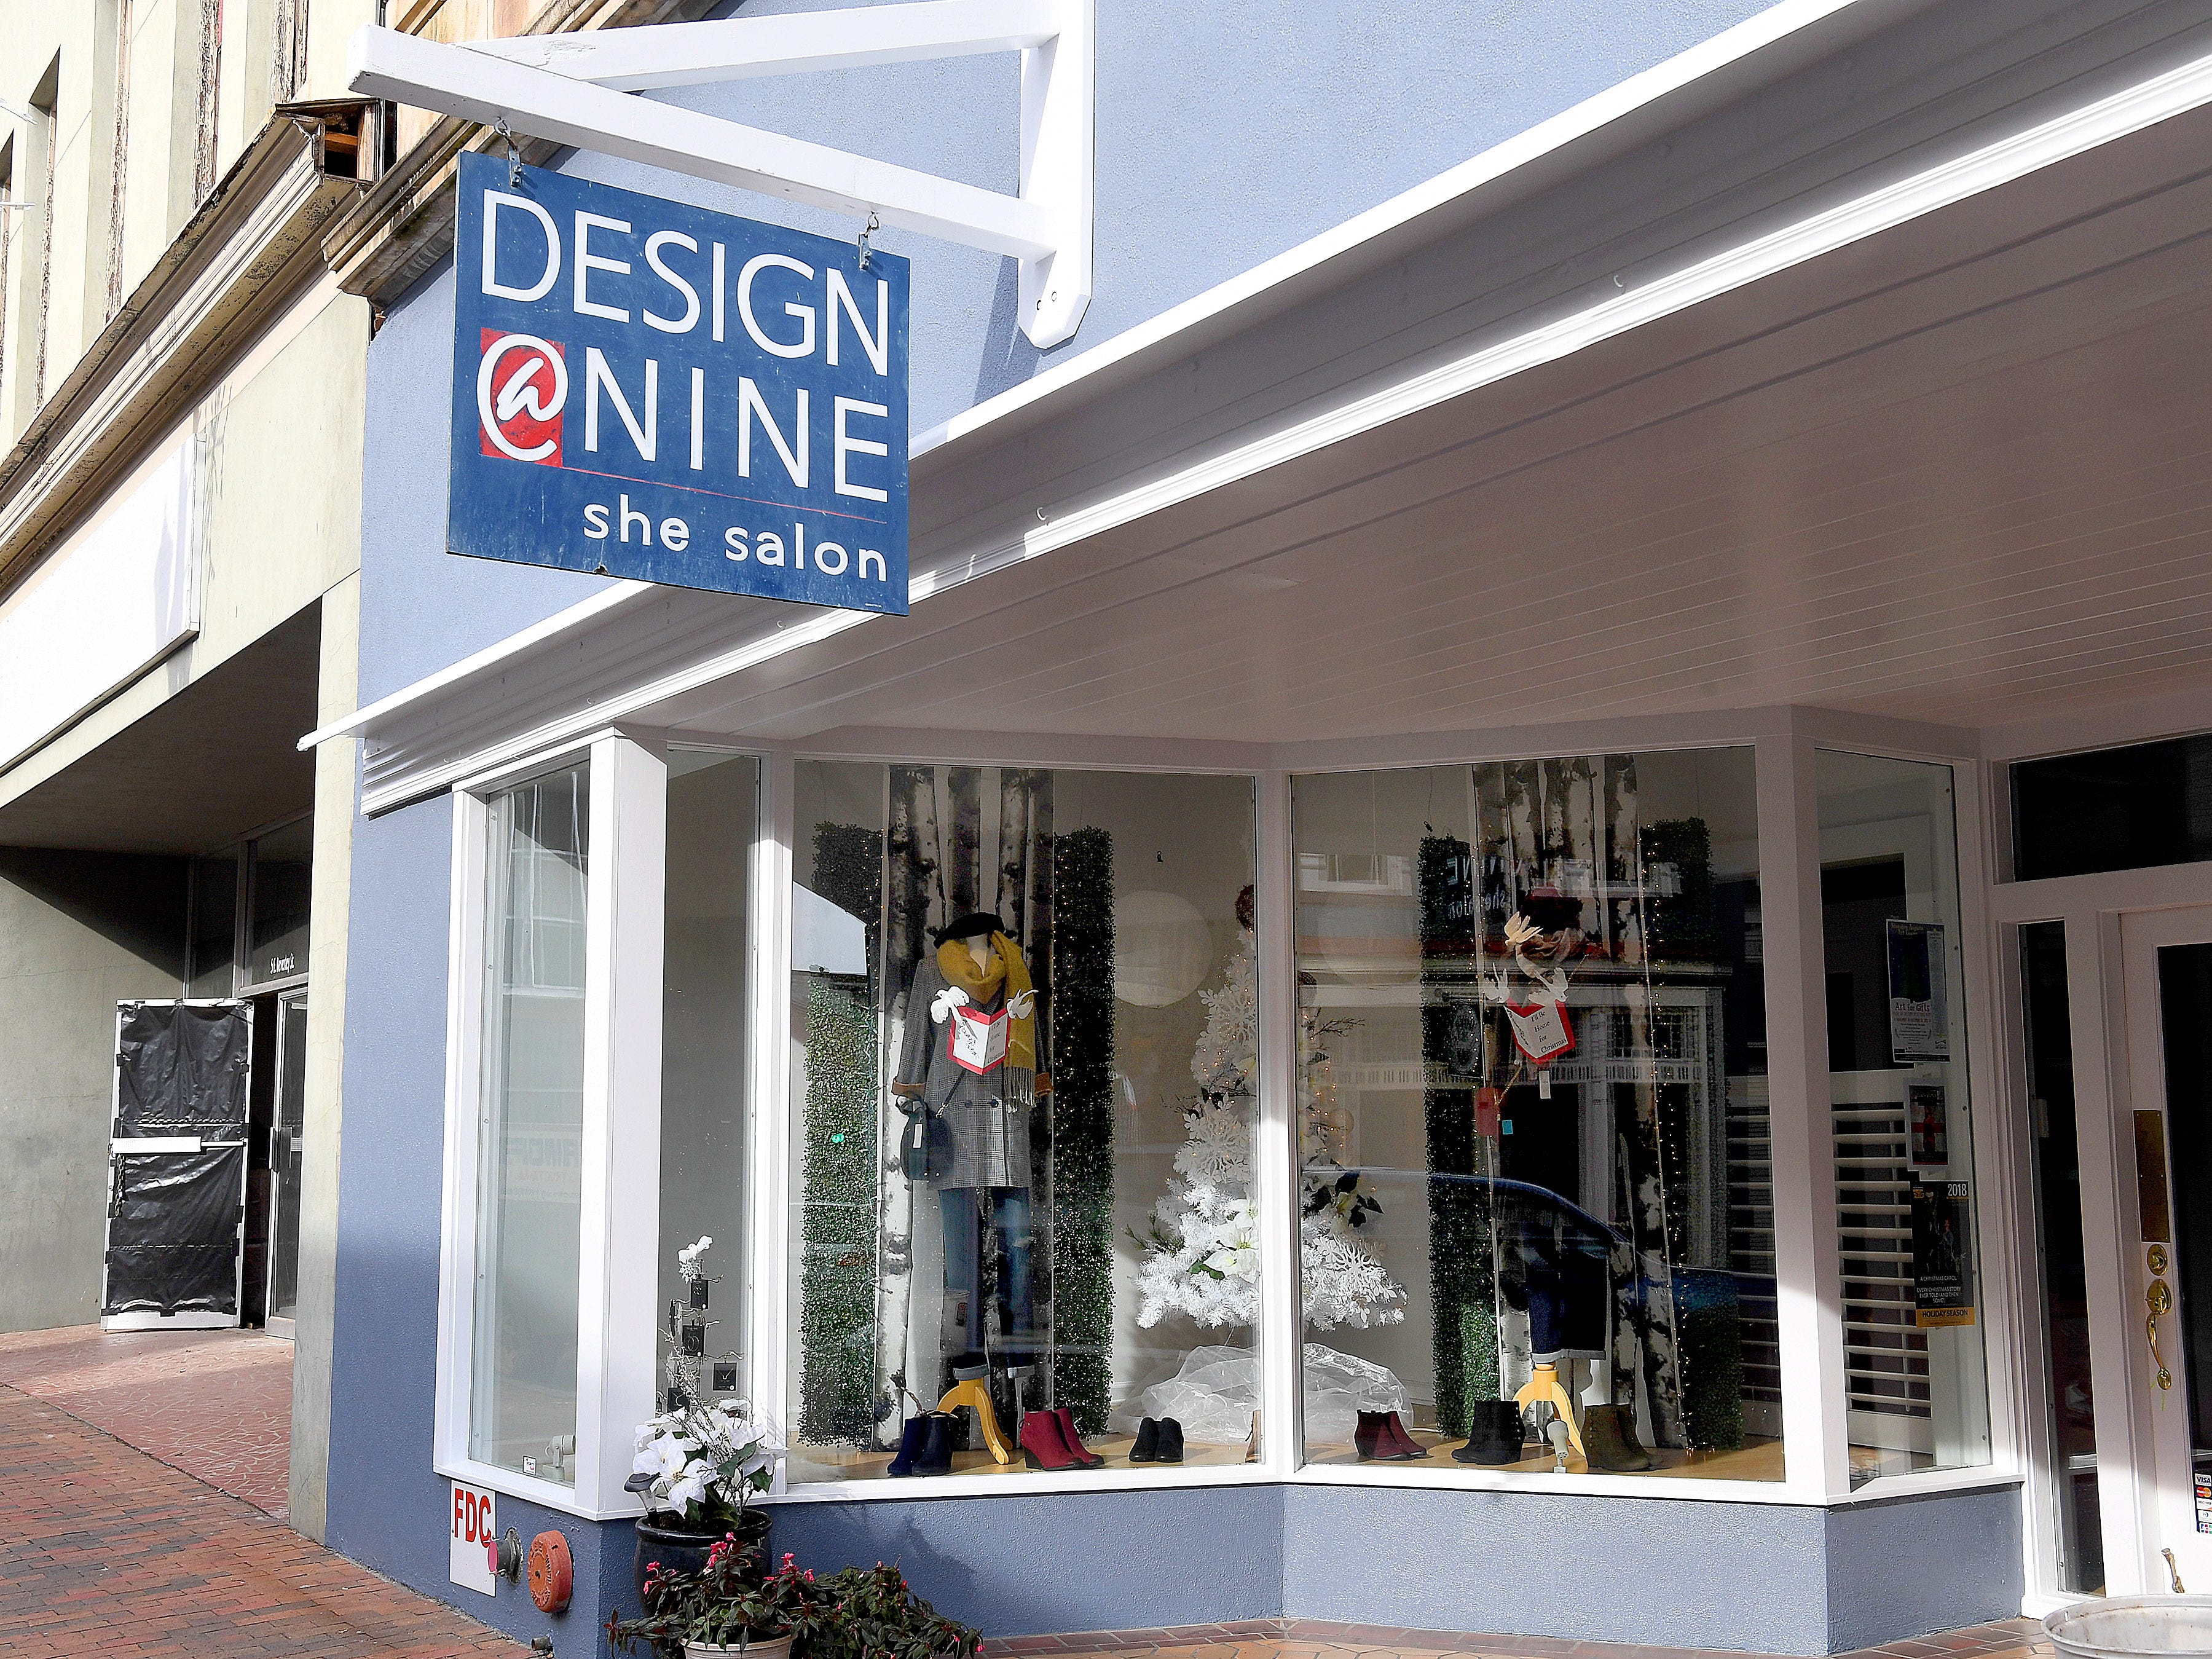 Design @ Nine's holiday window display placed third in Staunton Downtown Development Association's holiday storefront window display judging contest.